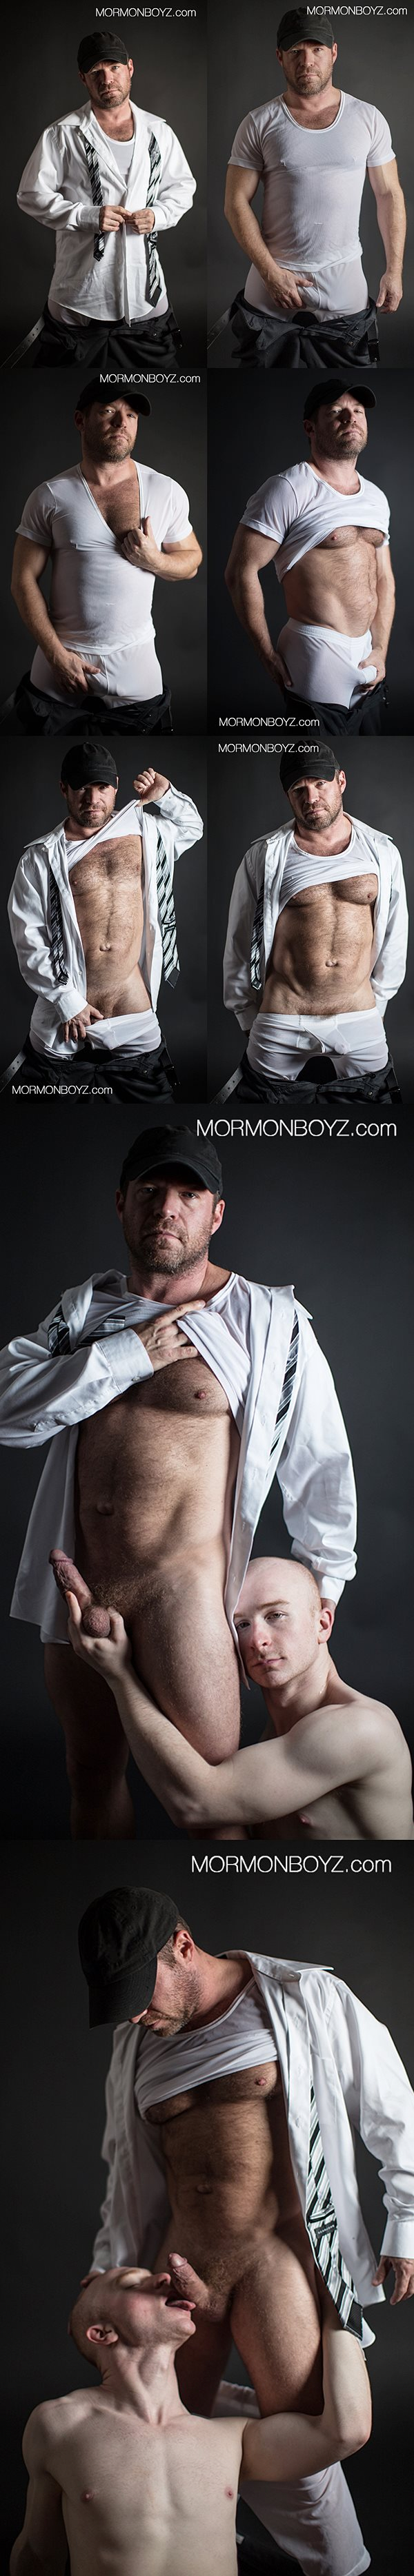 Super hot macho daddy President Woodruff at Mormonboyz 01